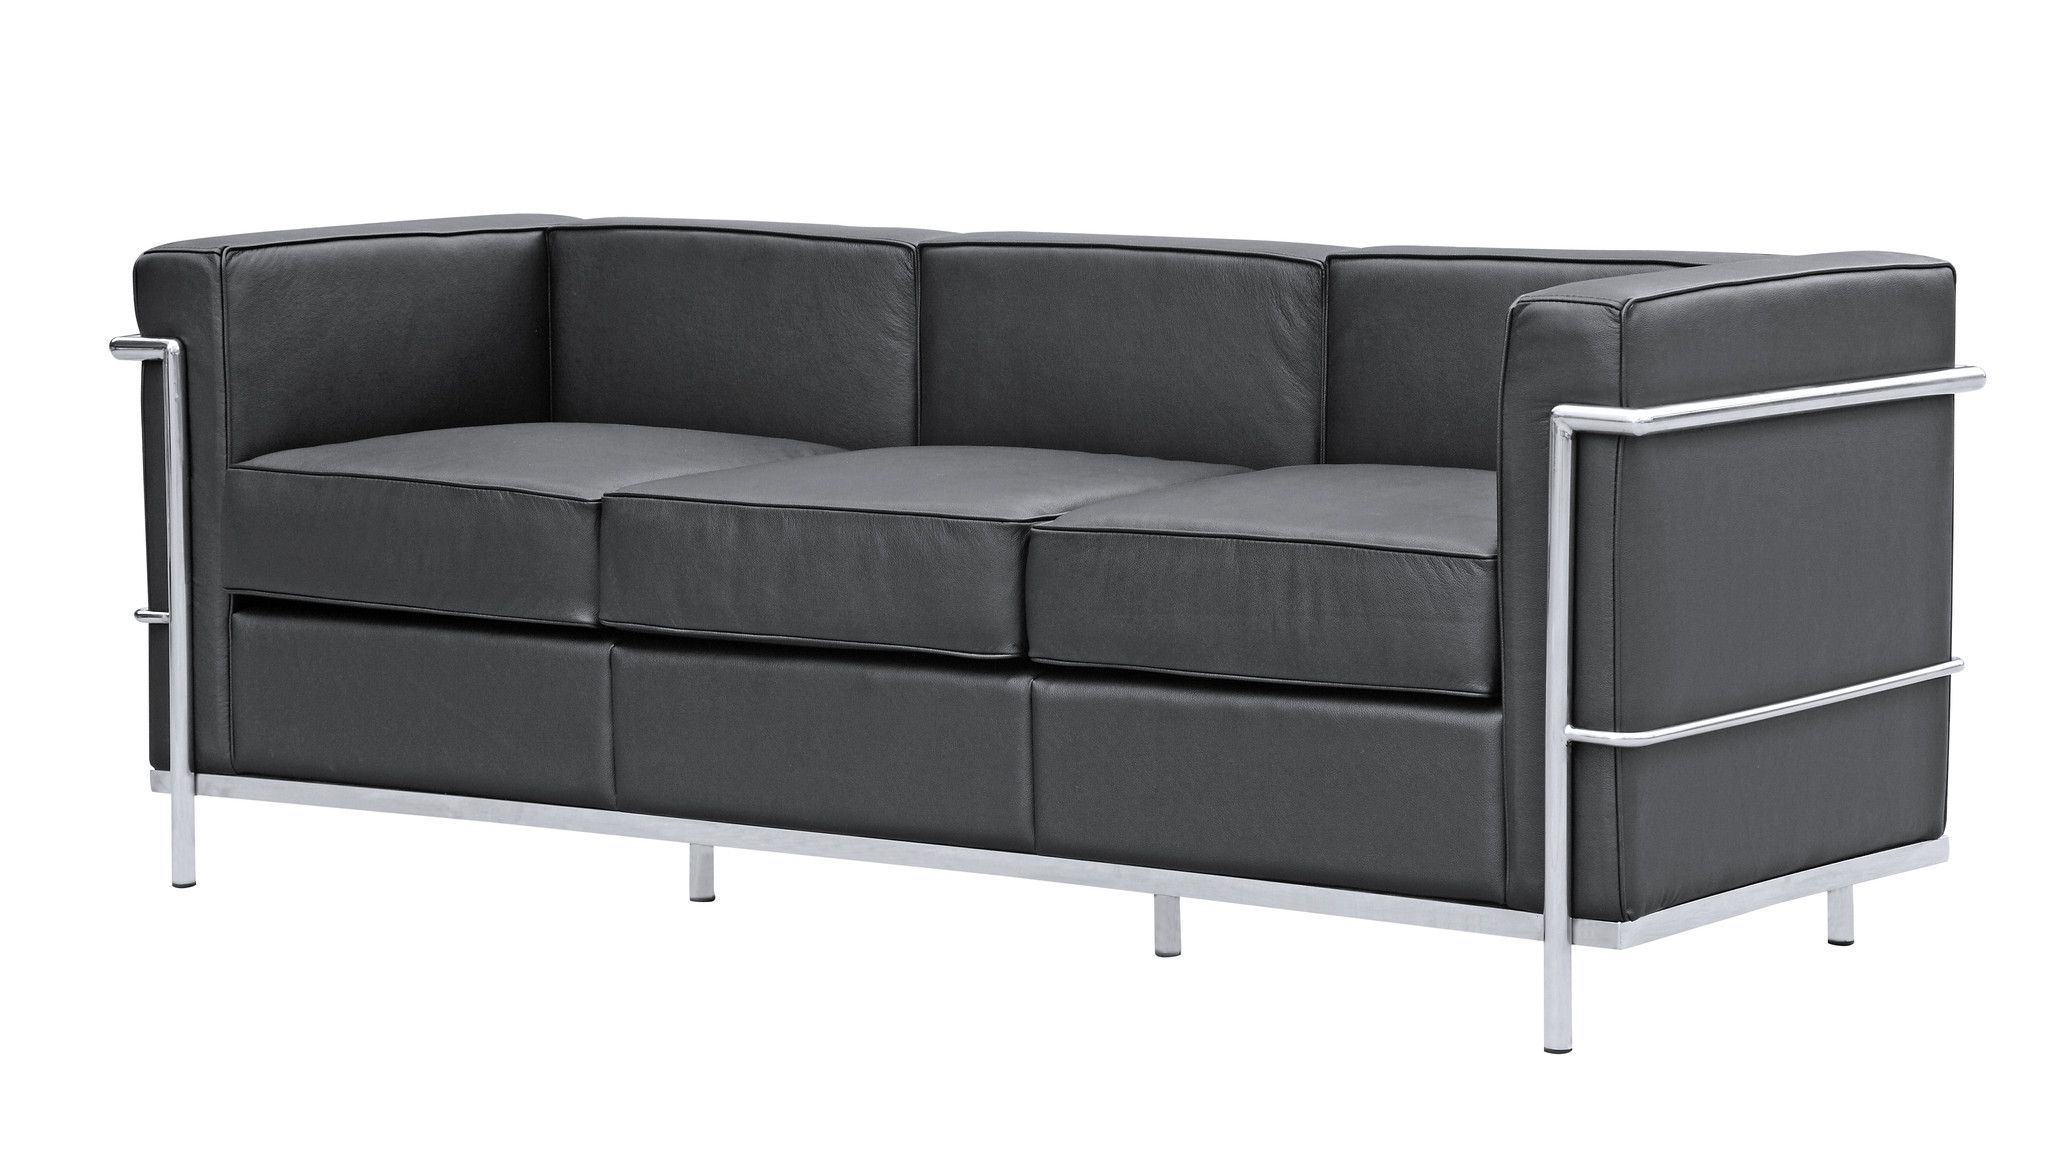 Unusual Sofas To Buy Cube Le Corbusier Lc2 Style Petit Sofa Black Leather